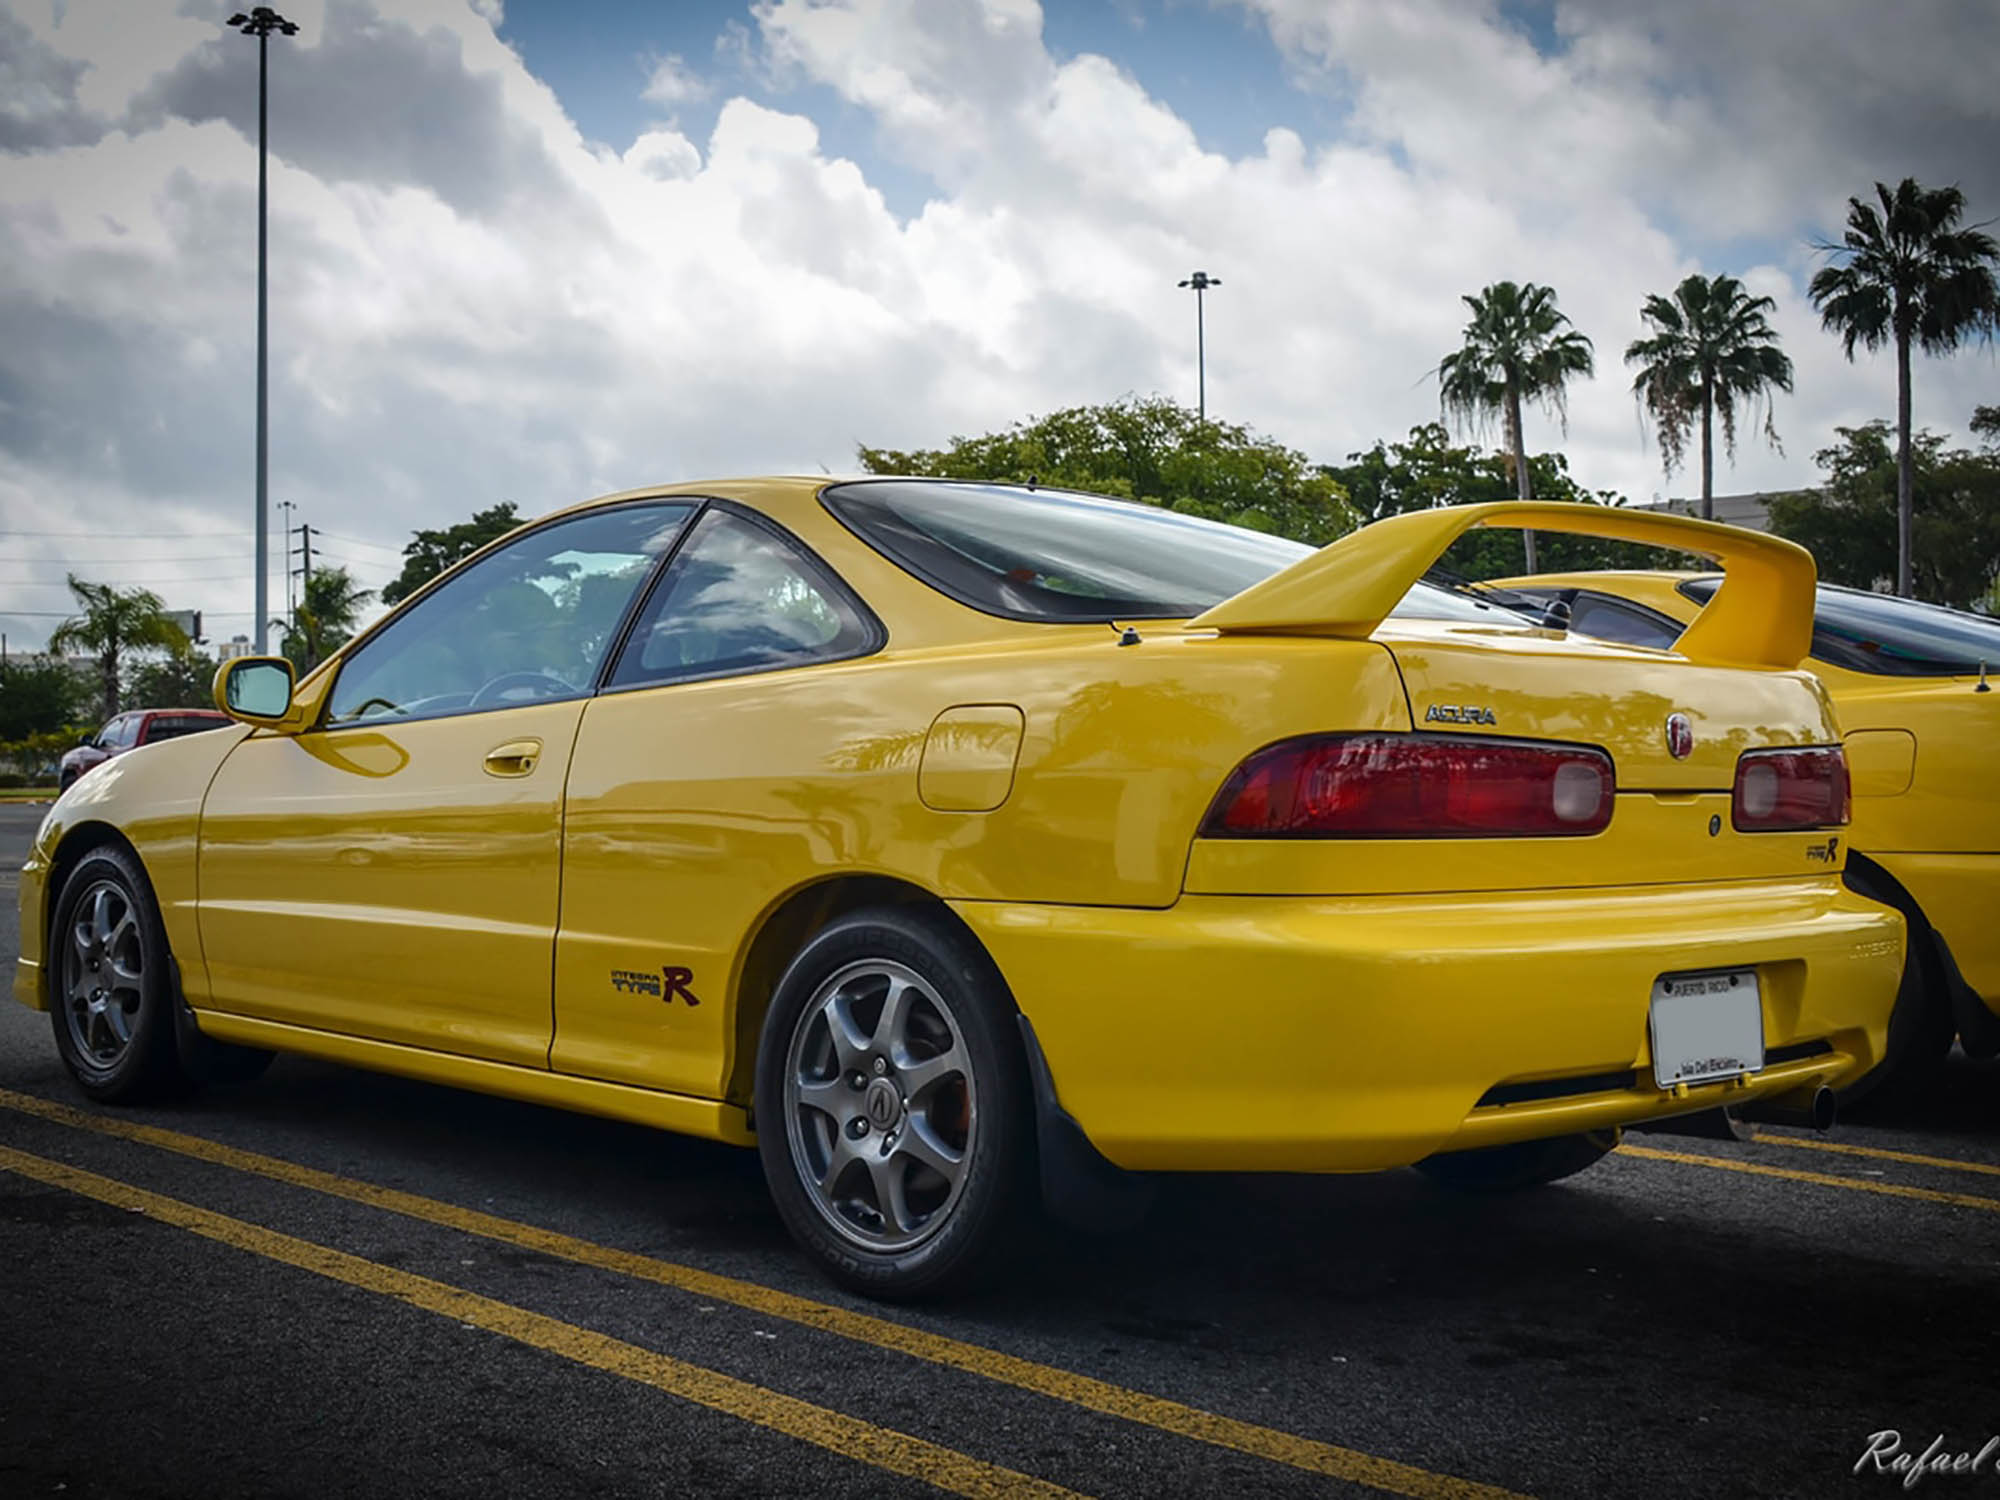 2000 Acura Integra Type-R in Phoenix Yellow